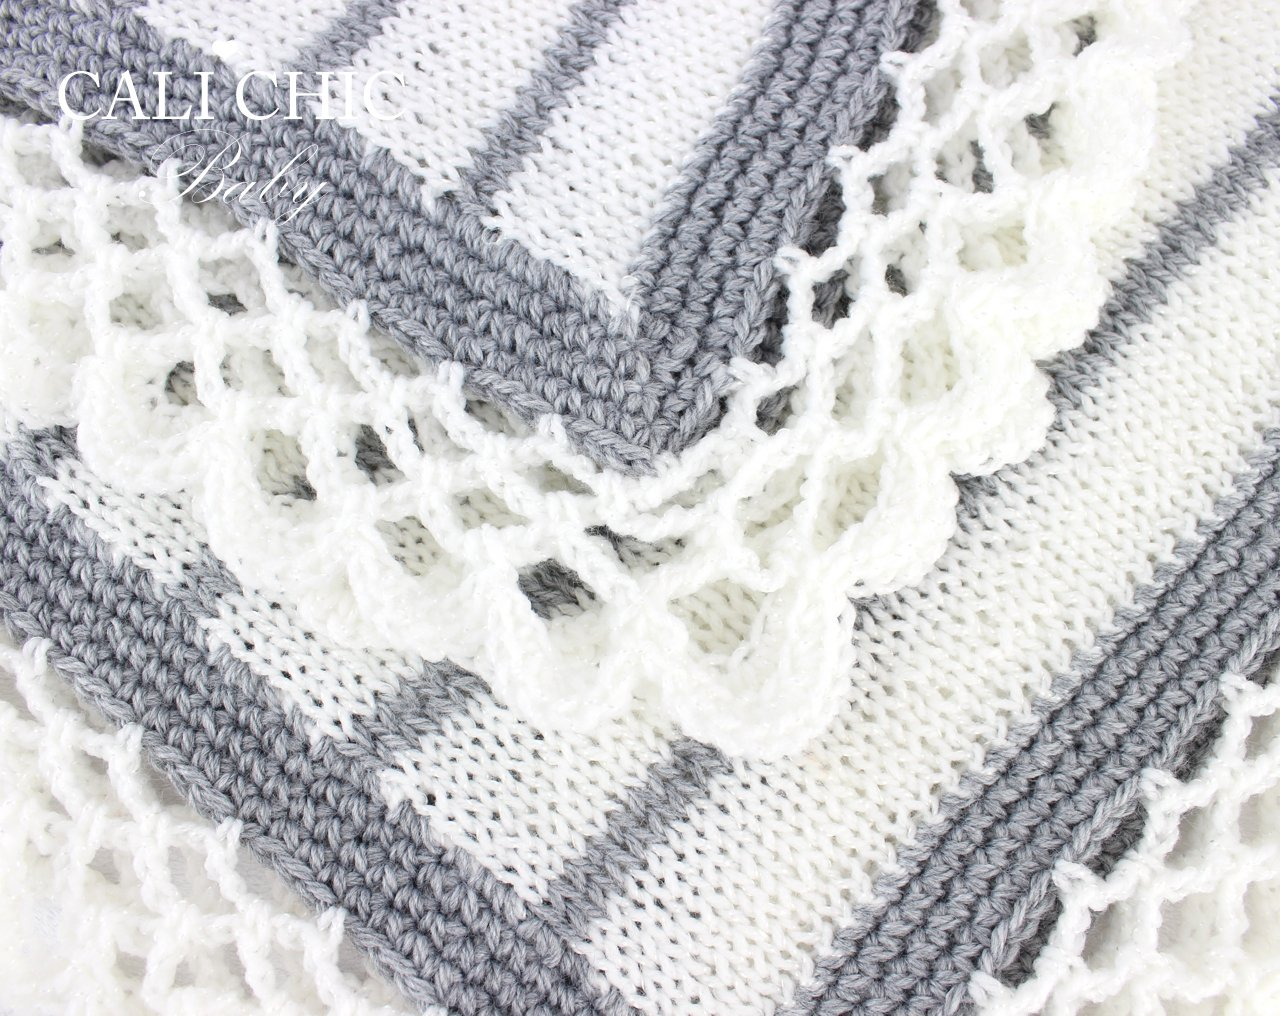 Crystal LaceKnitBaby BlanketPattern 68 | Cali Chic Baby